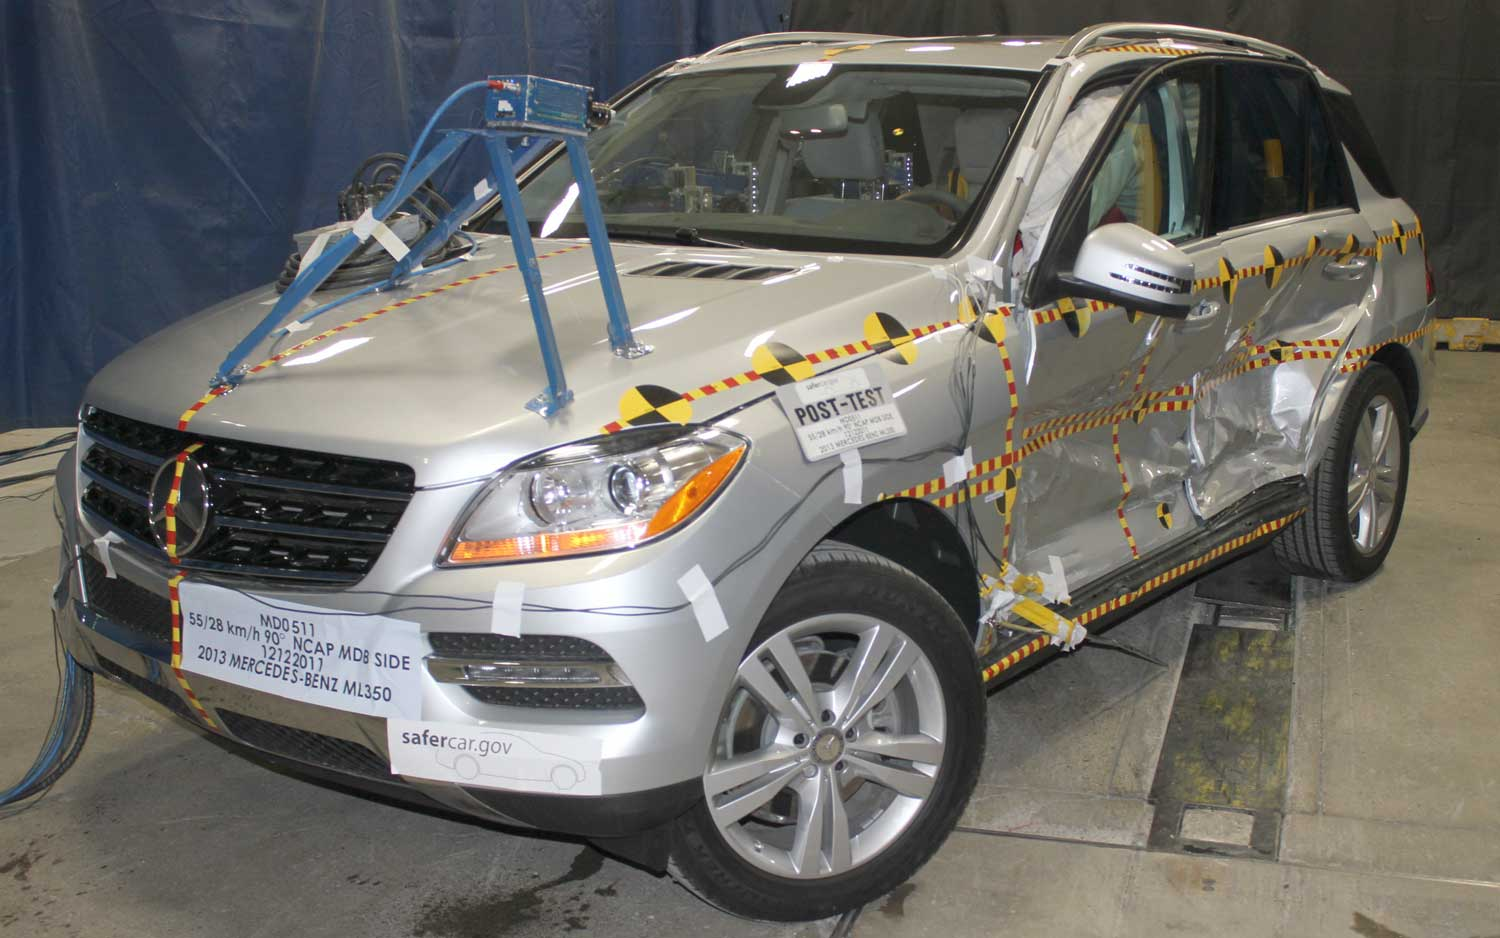 2013 Mercedes Benz ML Class Front Side View NHTSA1